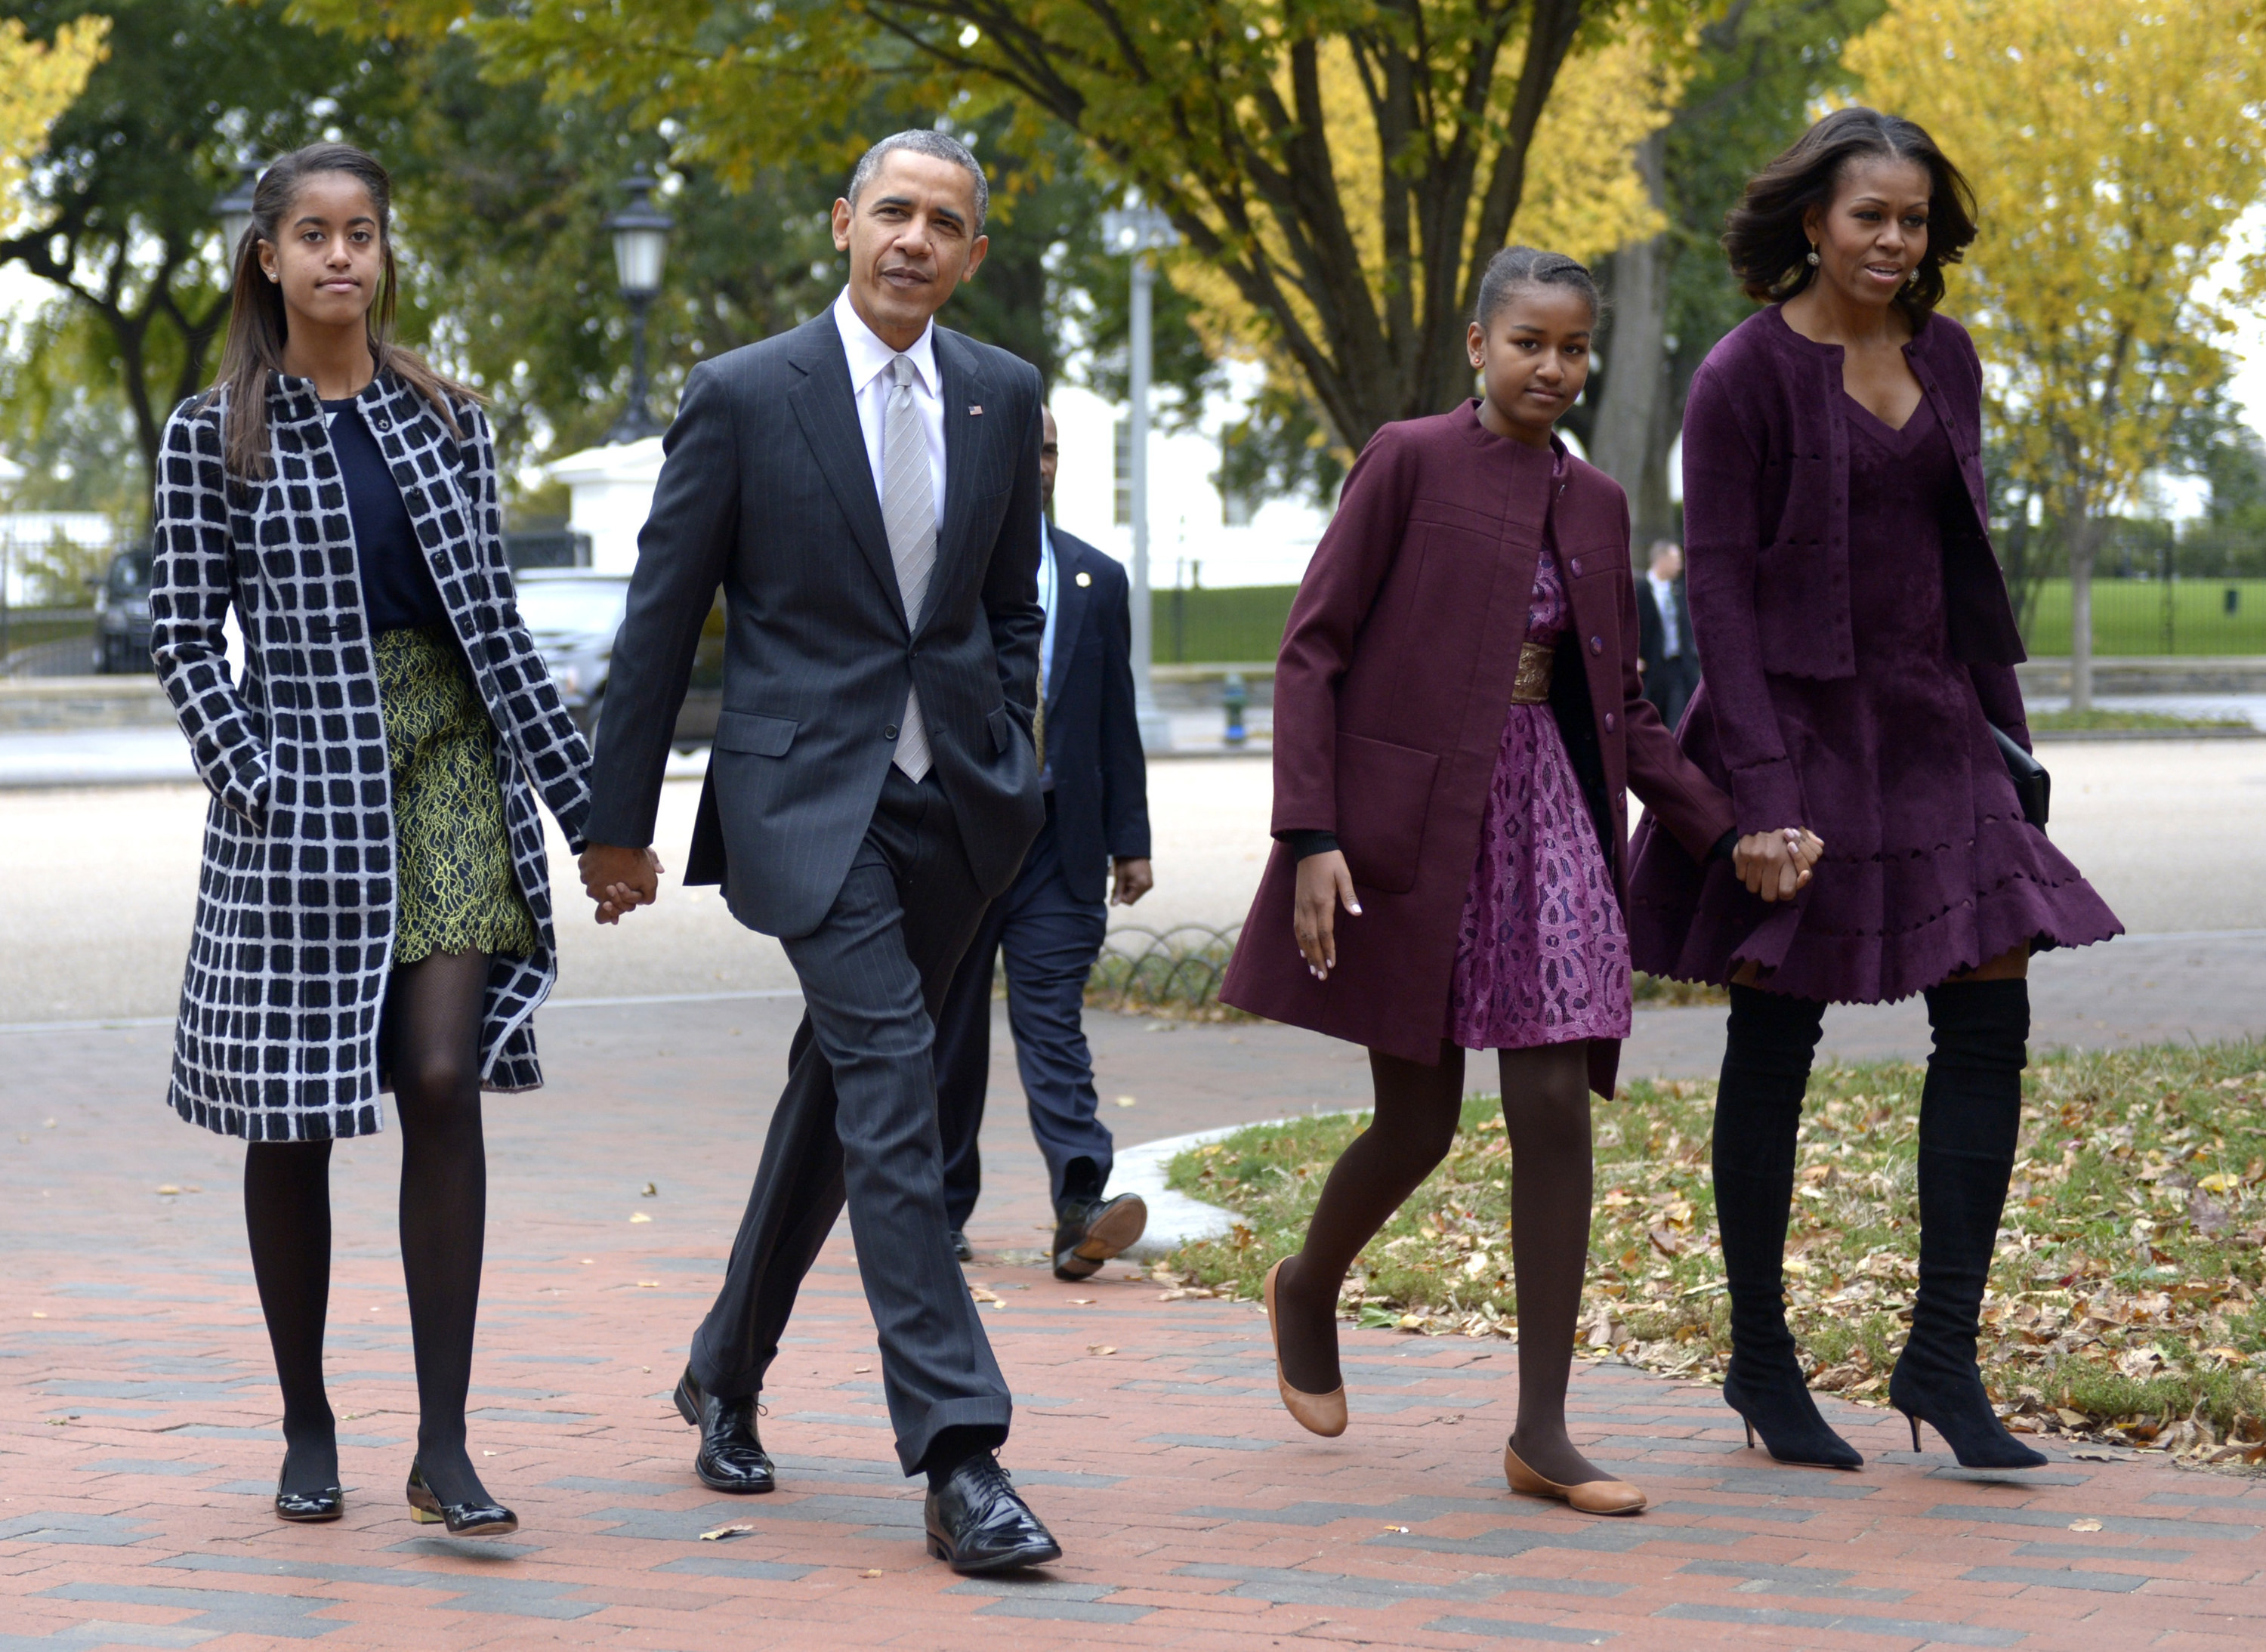 The Obama family holds hands while walking through a park